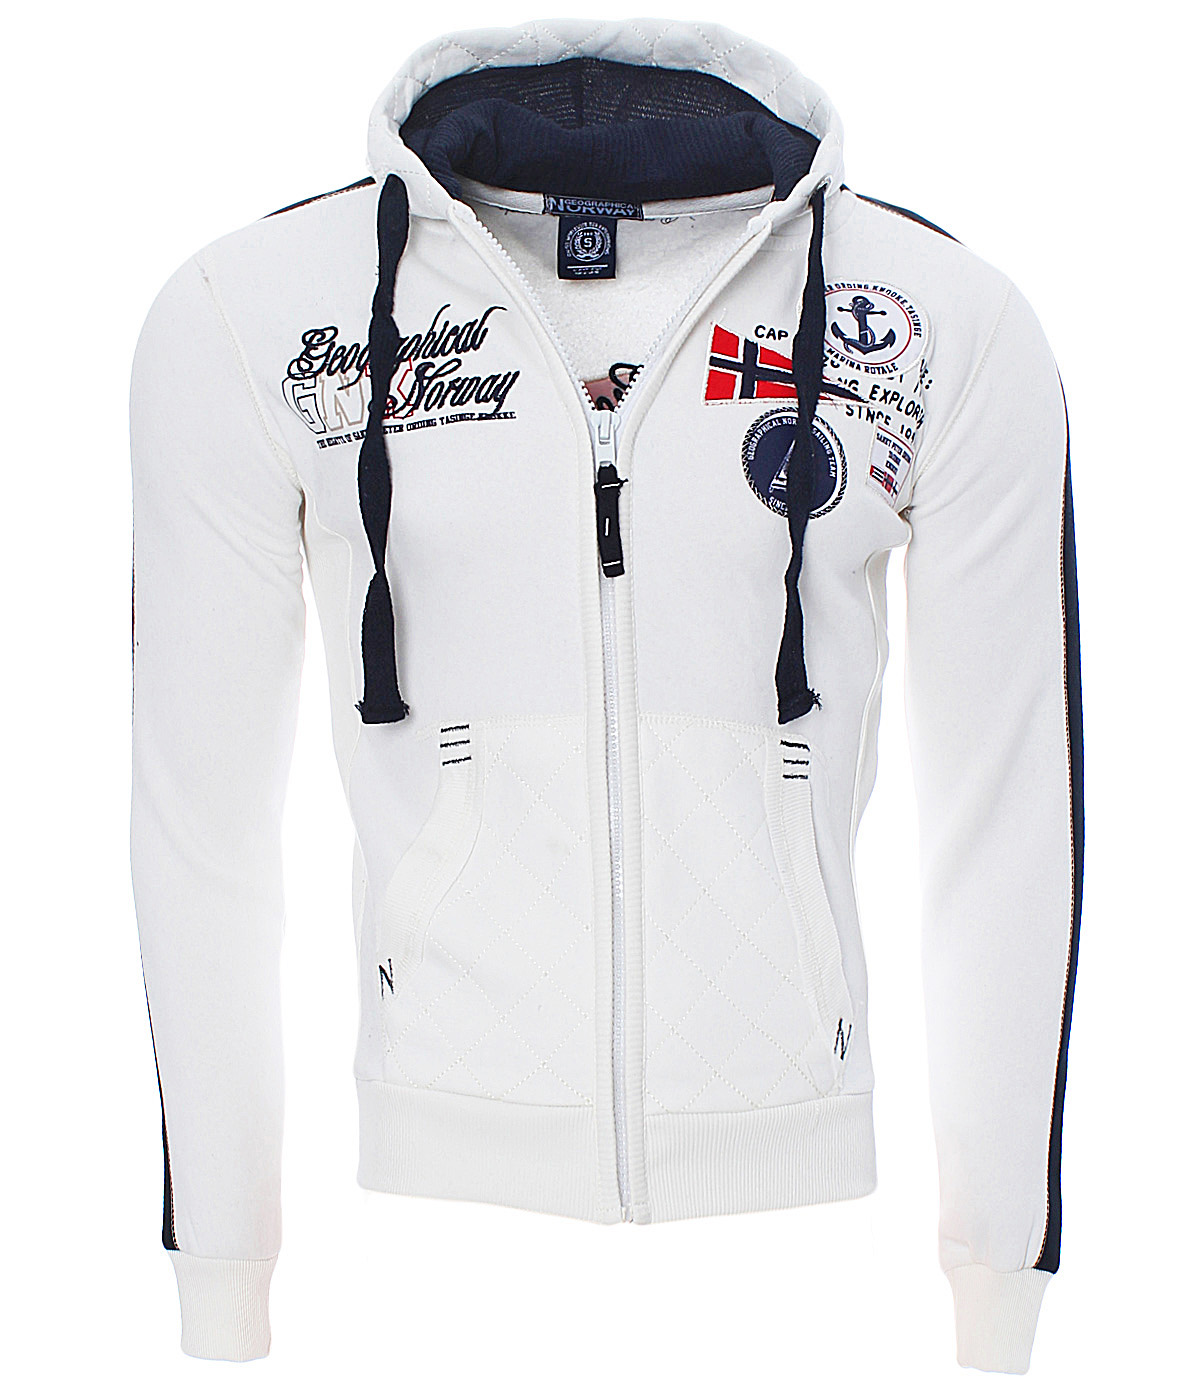 Geographical Norway Men Winter Jacket Sweatshirt Pullover Polo Hoodie Fatal New